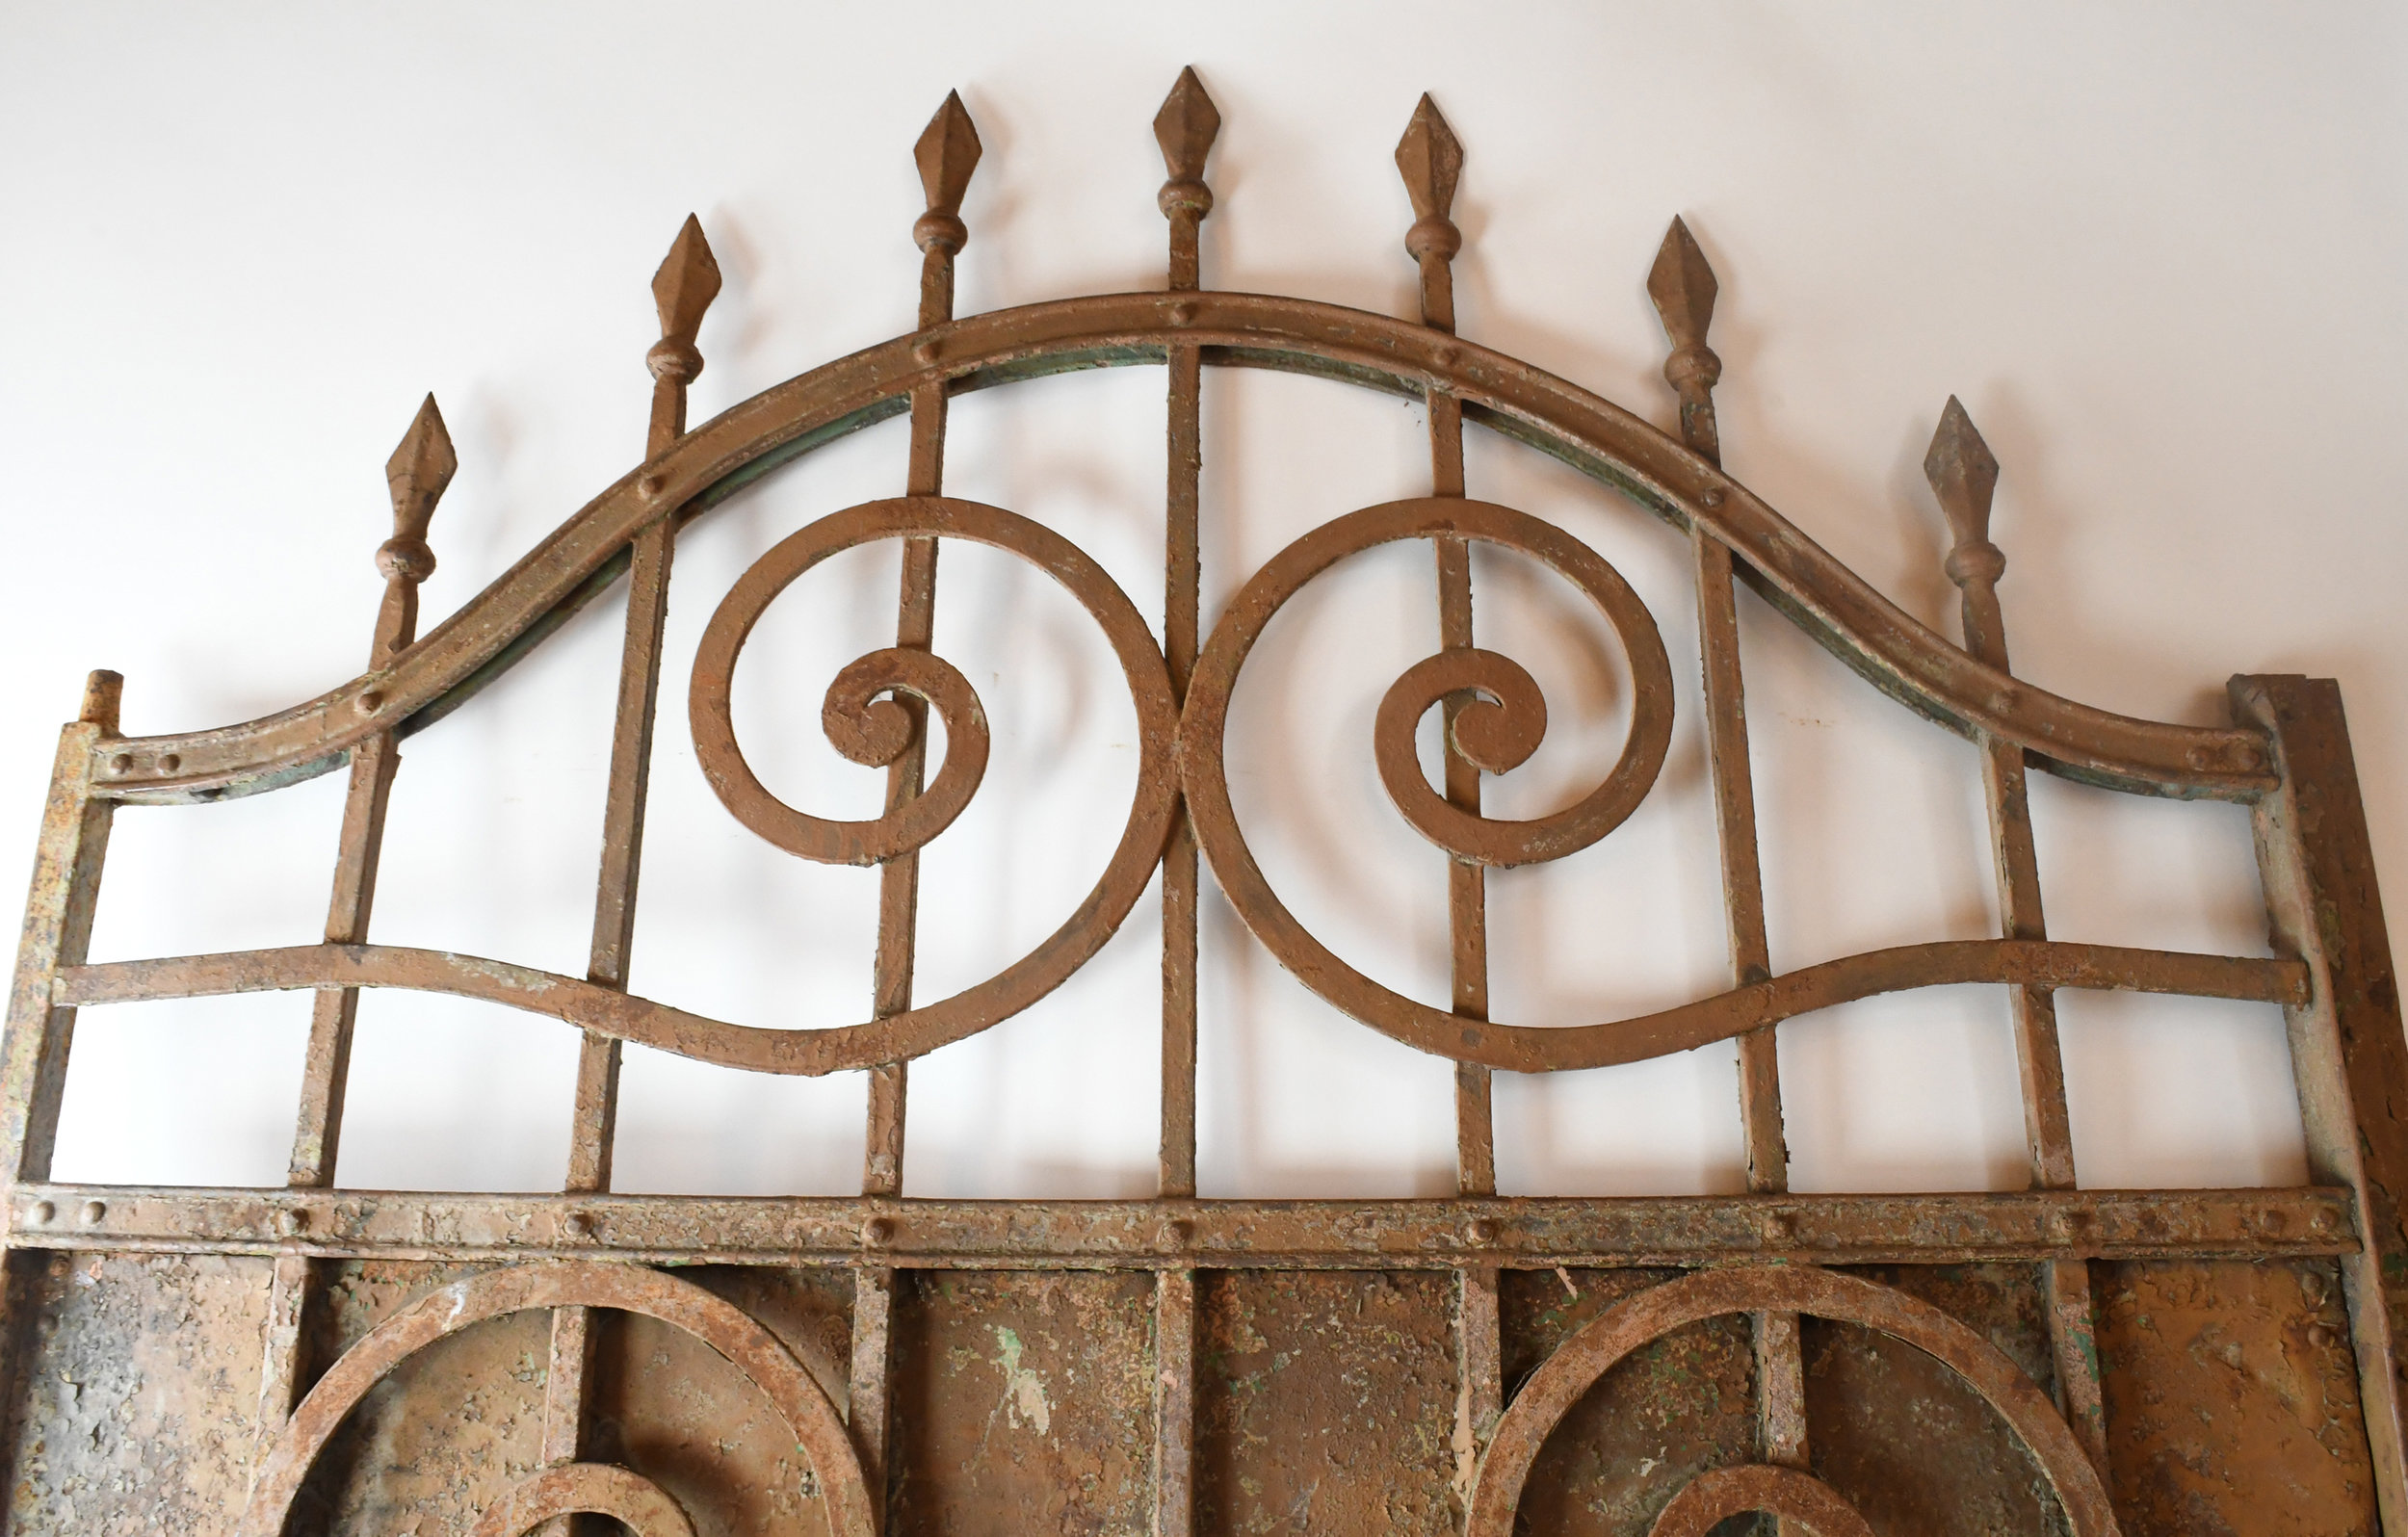 47498-Arched-iron-gate-detail-8.jpg